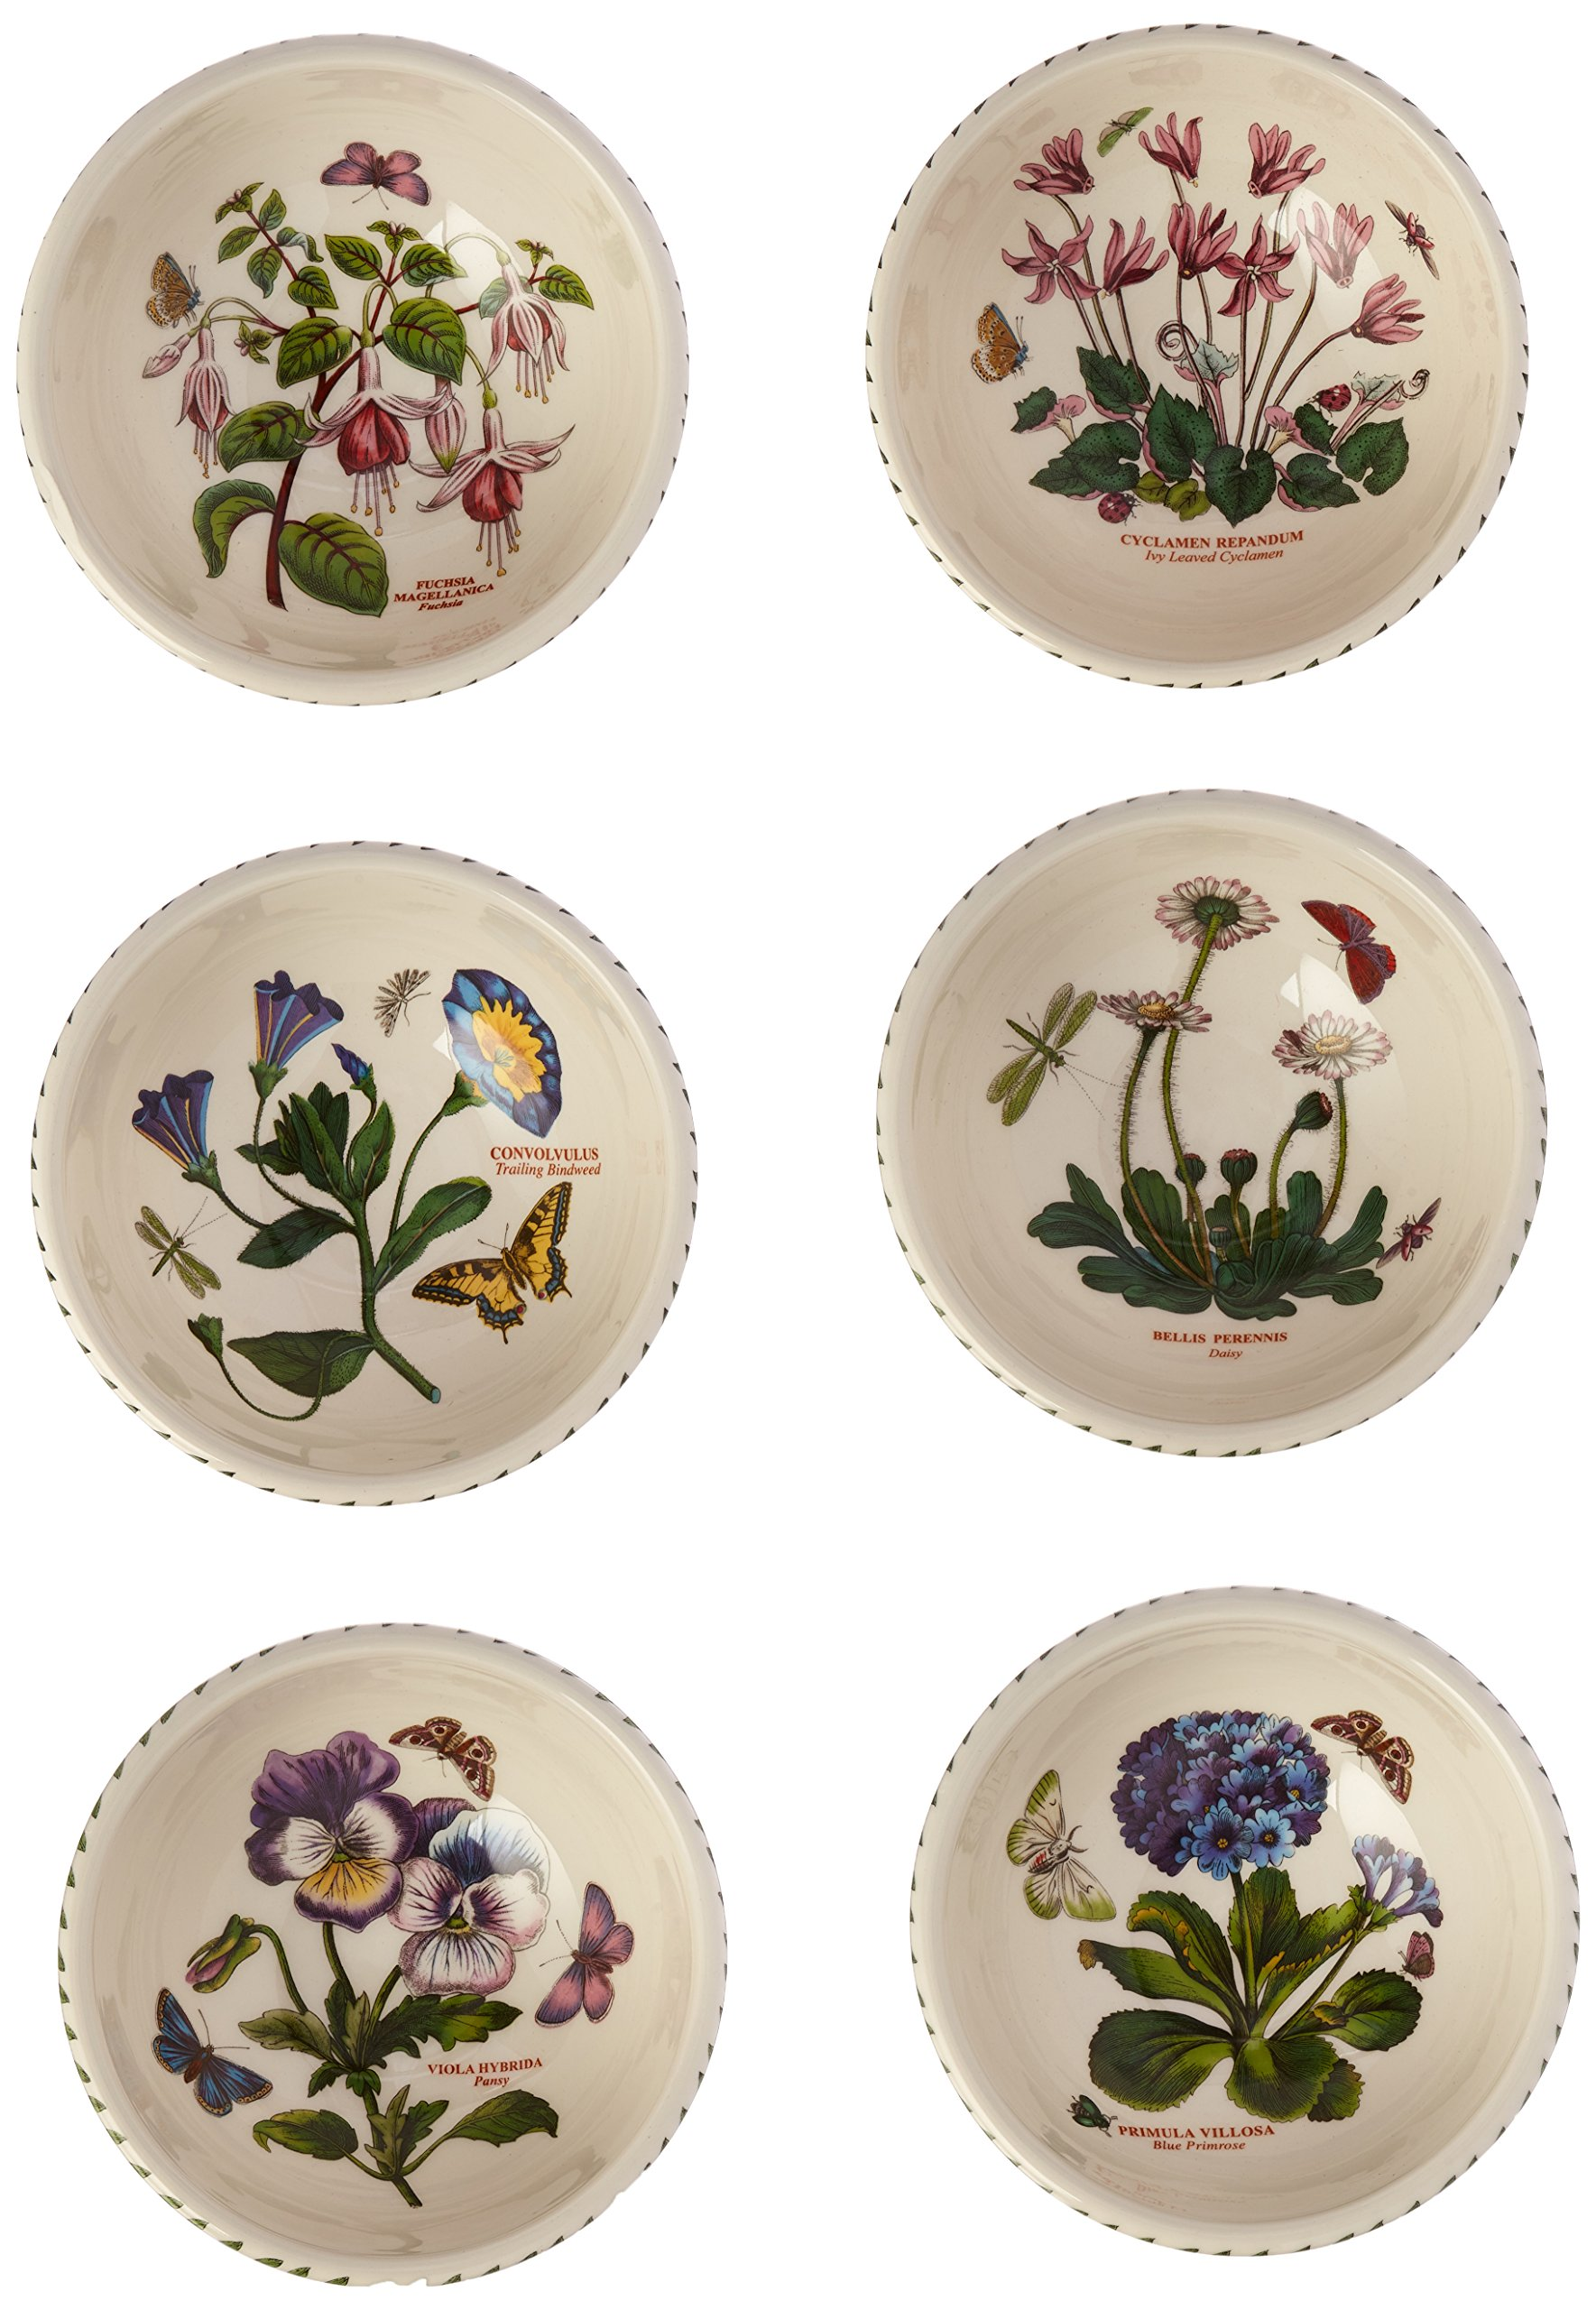 Portmeirion Botanic Garden Individual Fruit Salad Bowls, Set of 6 Assorted Motifs by Portmeirion